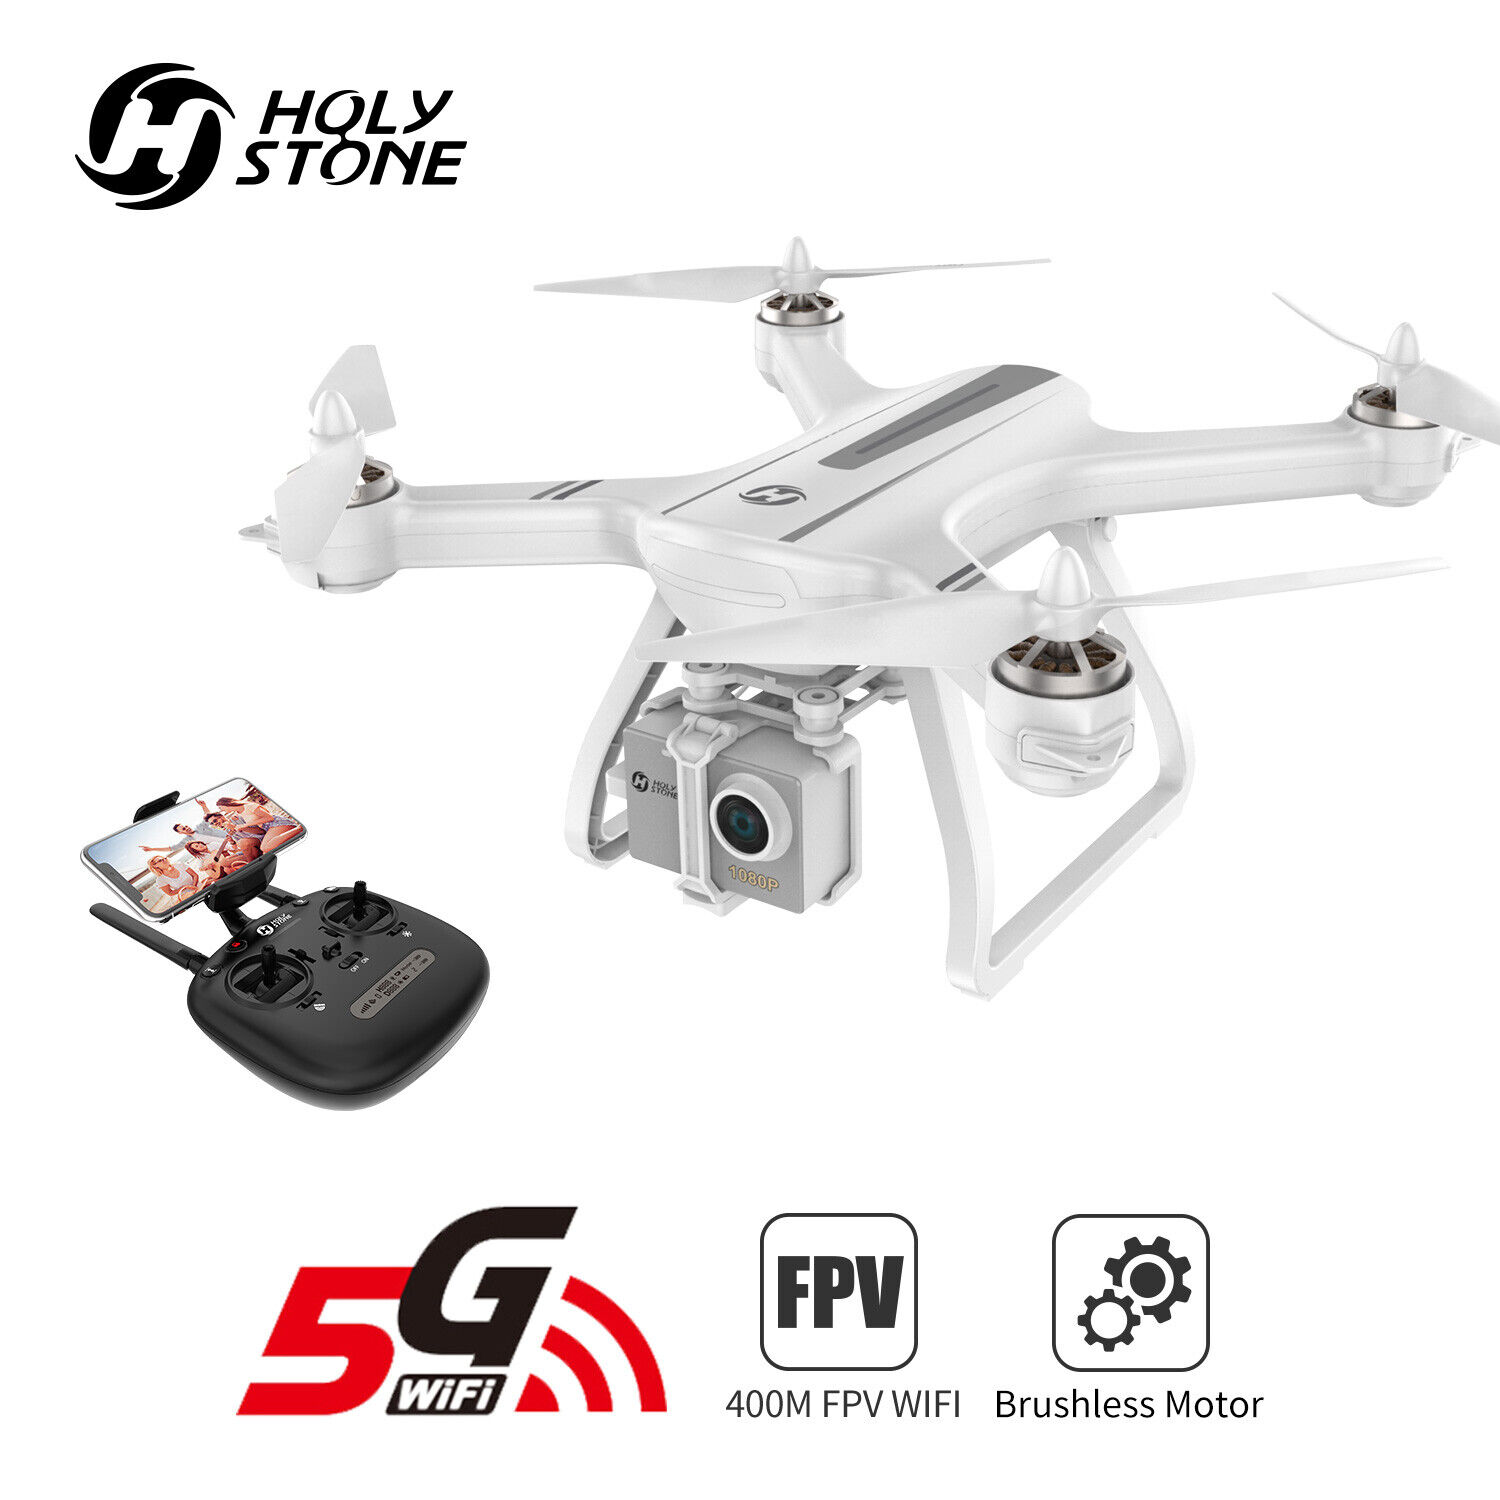 Holy Stone HS700 GPS FPV Drone 1080P HD Camera 5G wifi brush